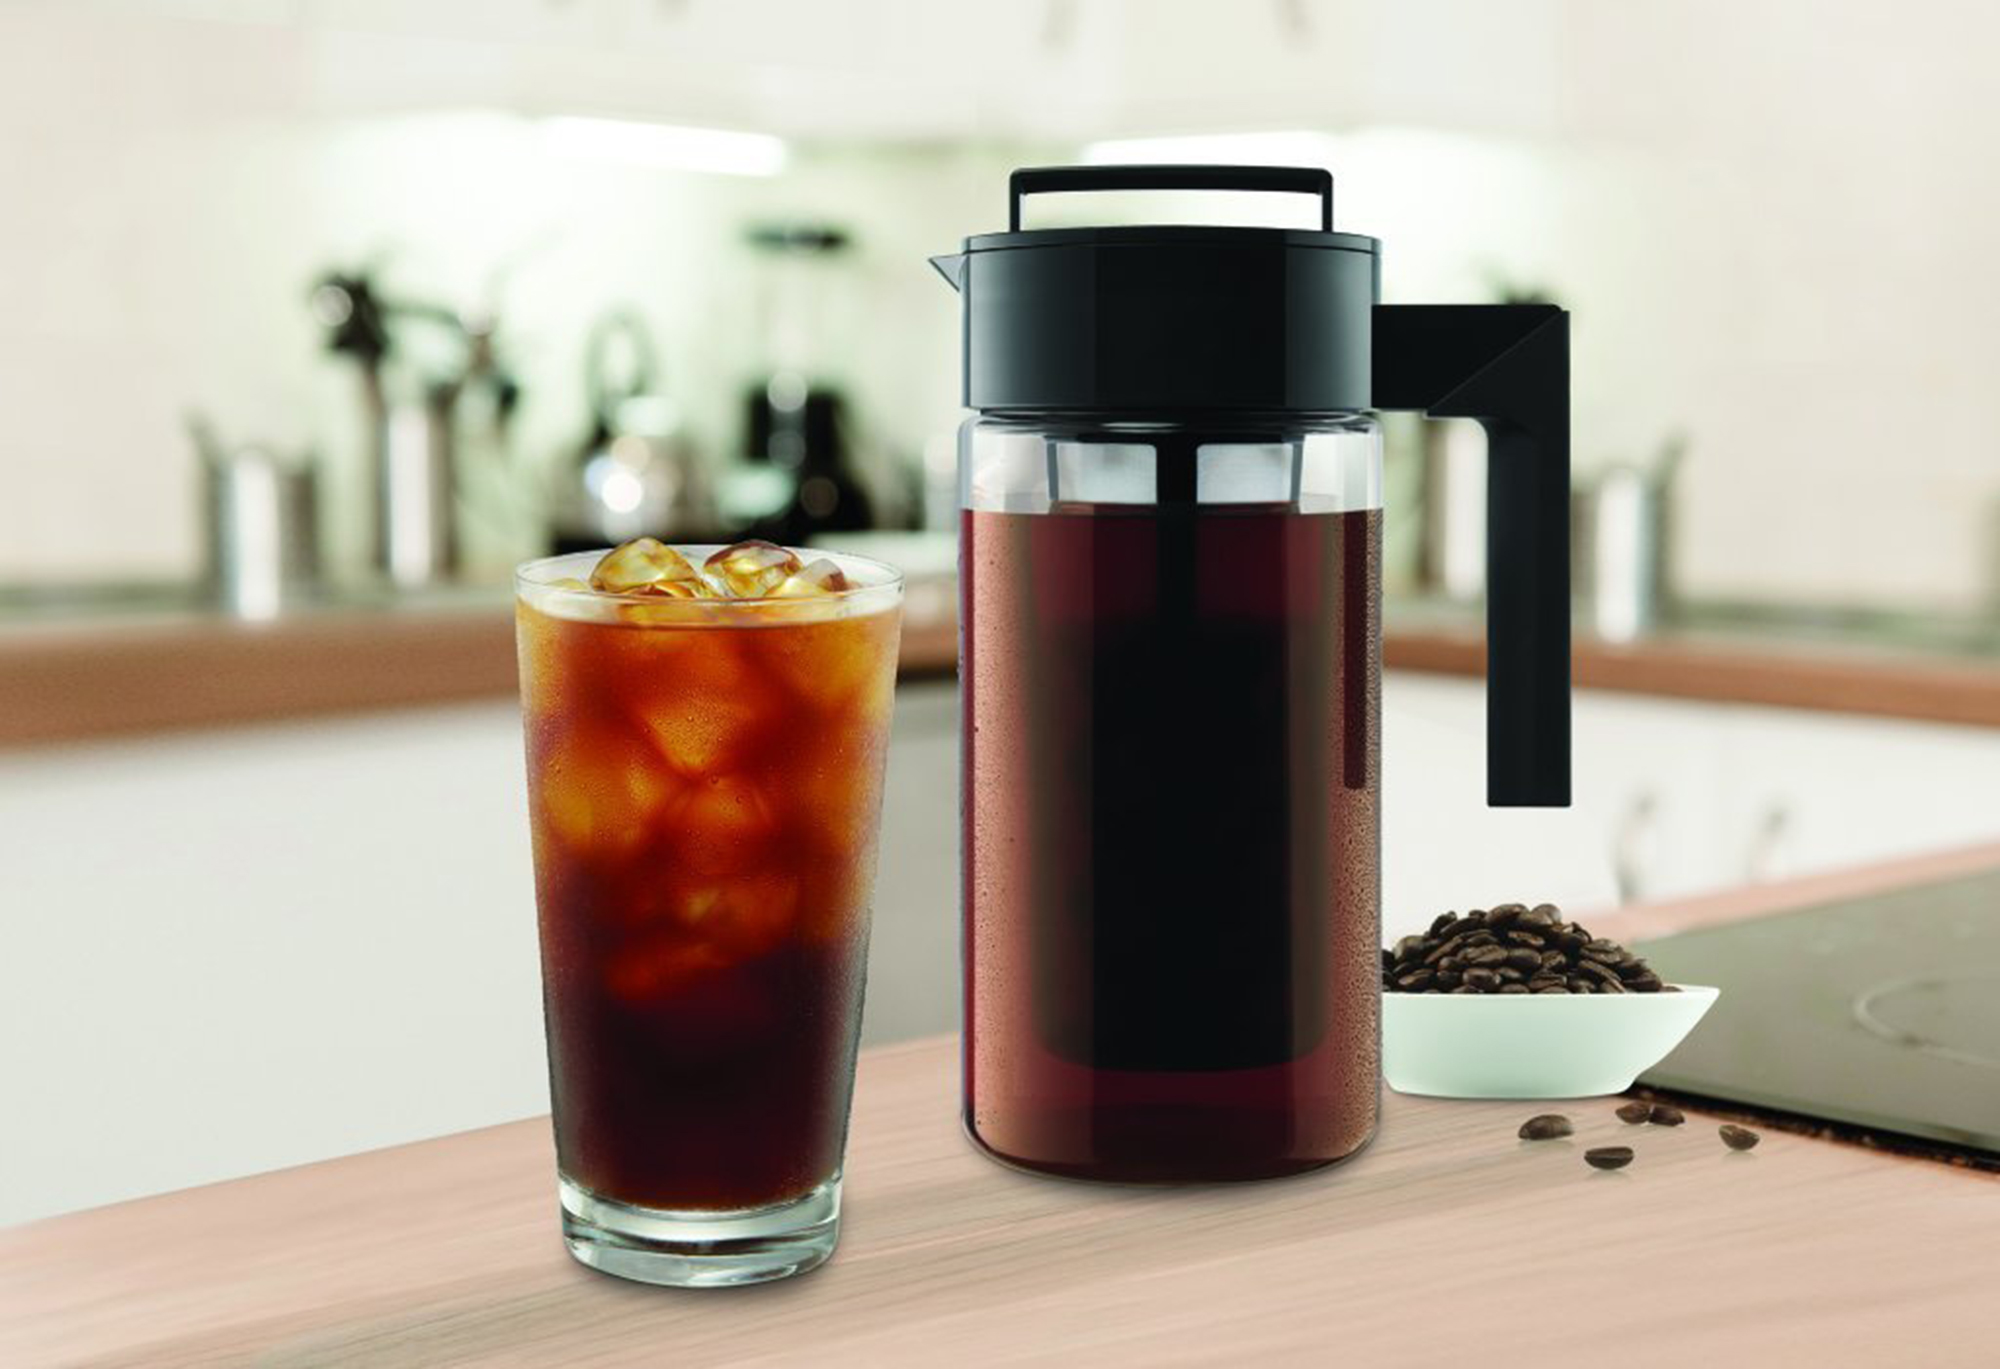 Over 1,800 Amazon Customers Swear by This Cold Brew Coffee Maker—And It's Only $25